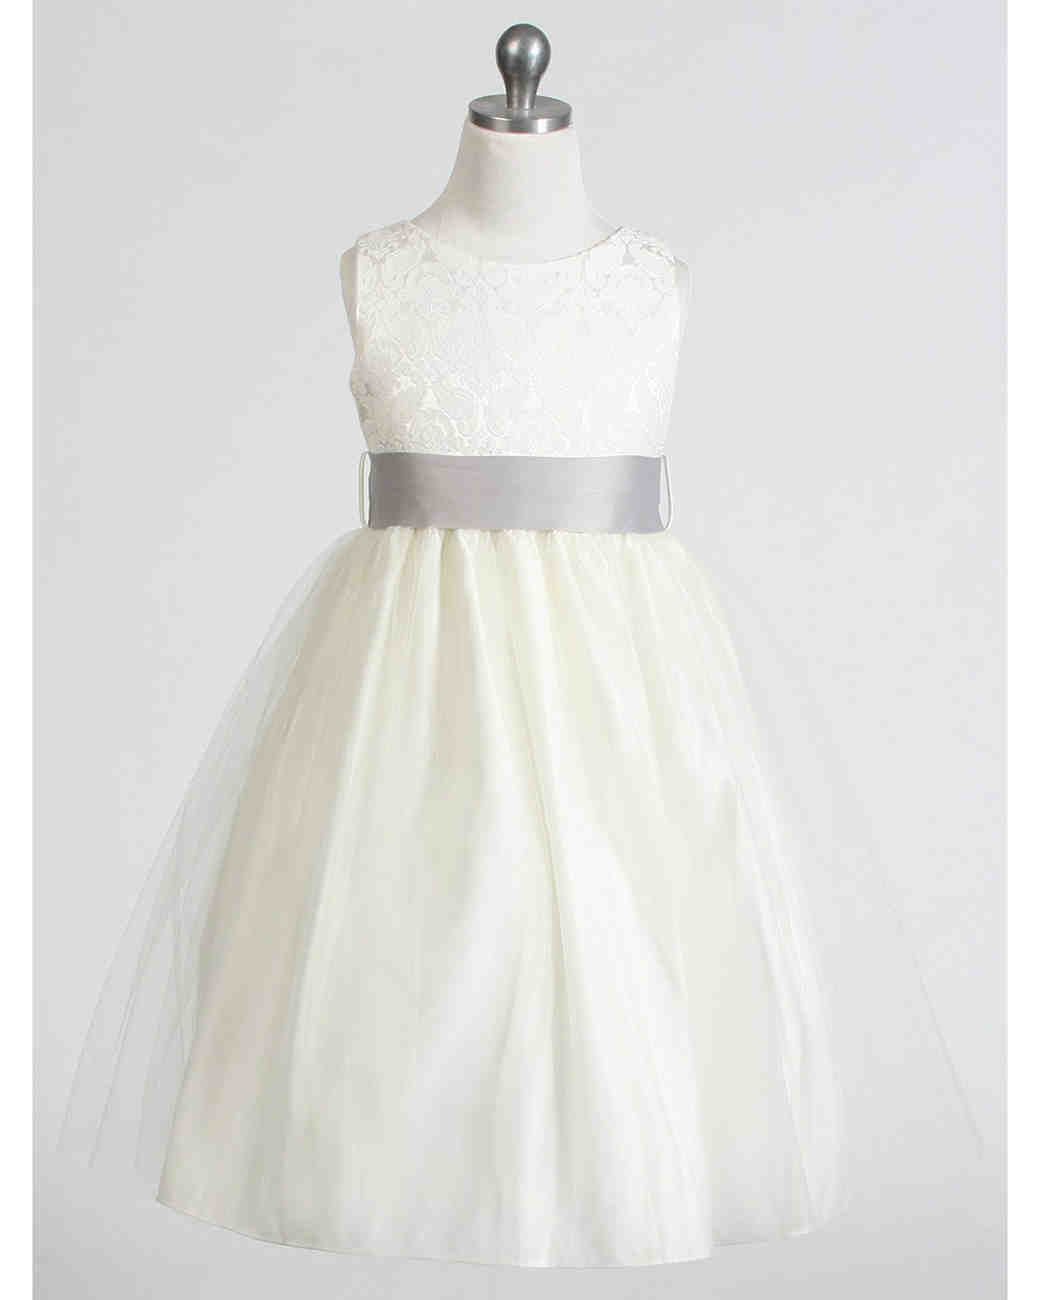 22 Flower Girl Dresses For A Spring Wedding Martha Stewart Weddings